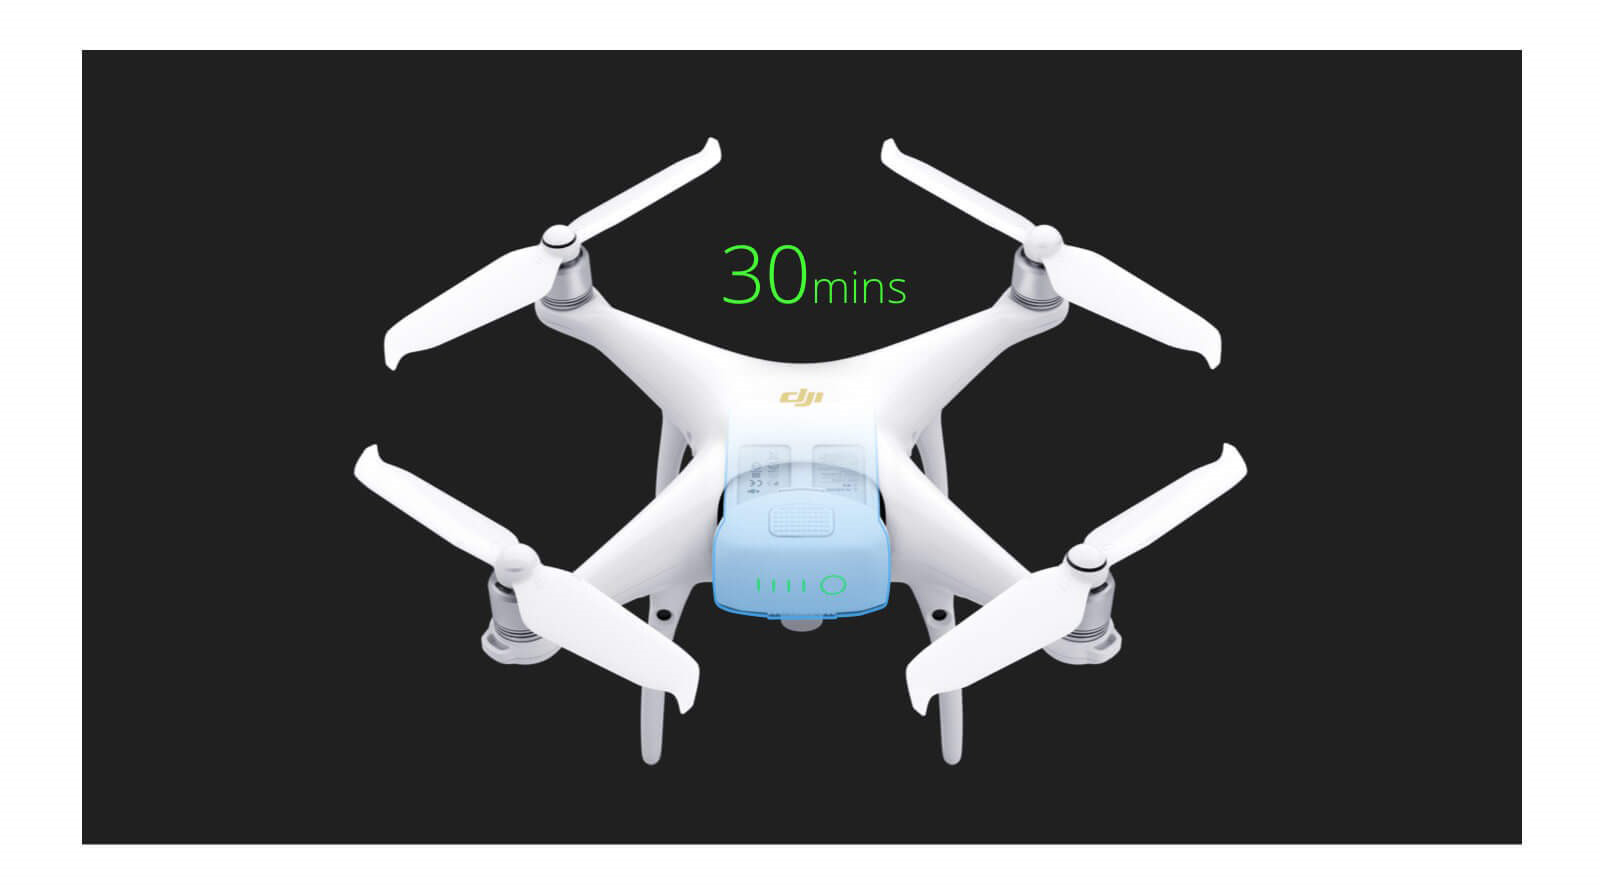 DJI Phantom 4 Pro V2.0 (Intelligent Batteries) at D1 Store Australia